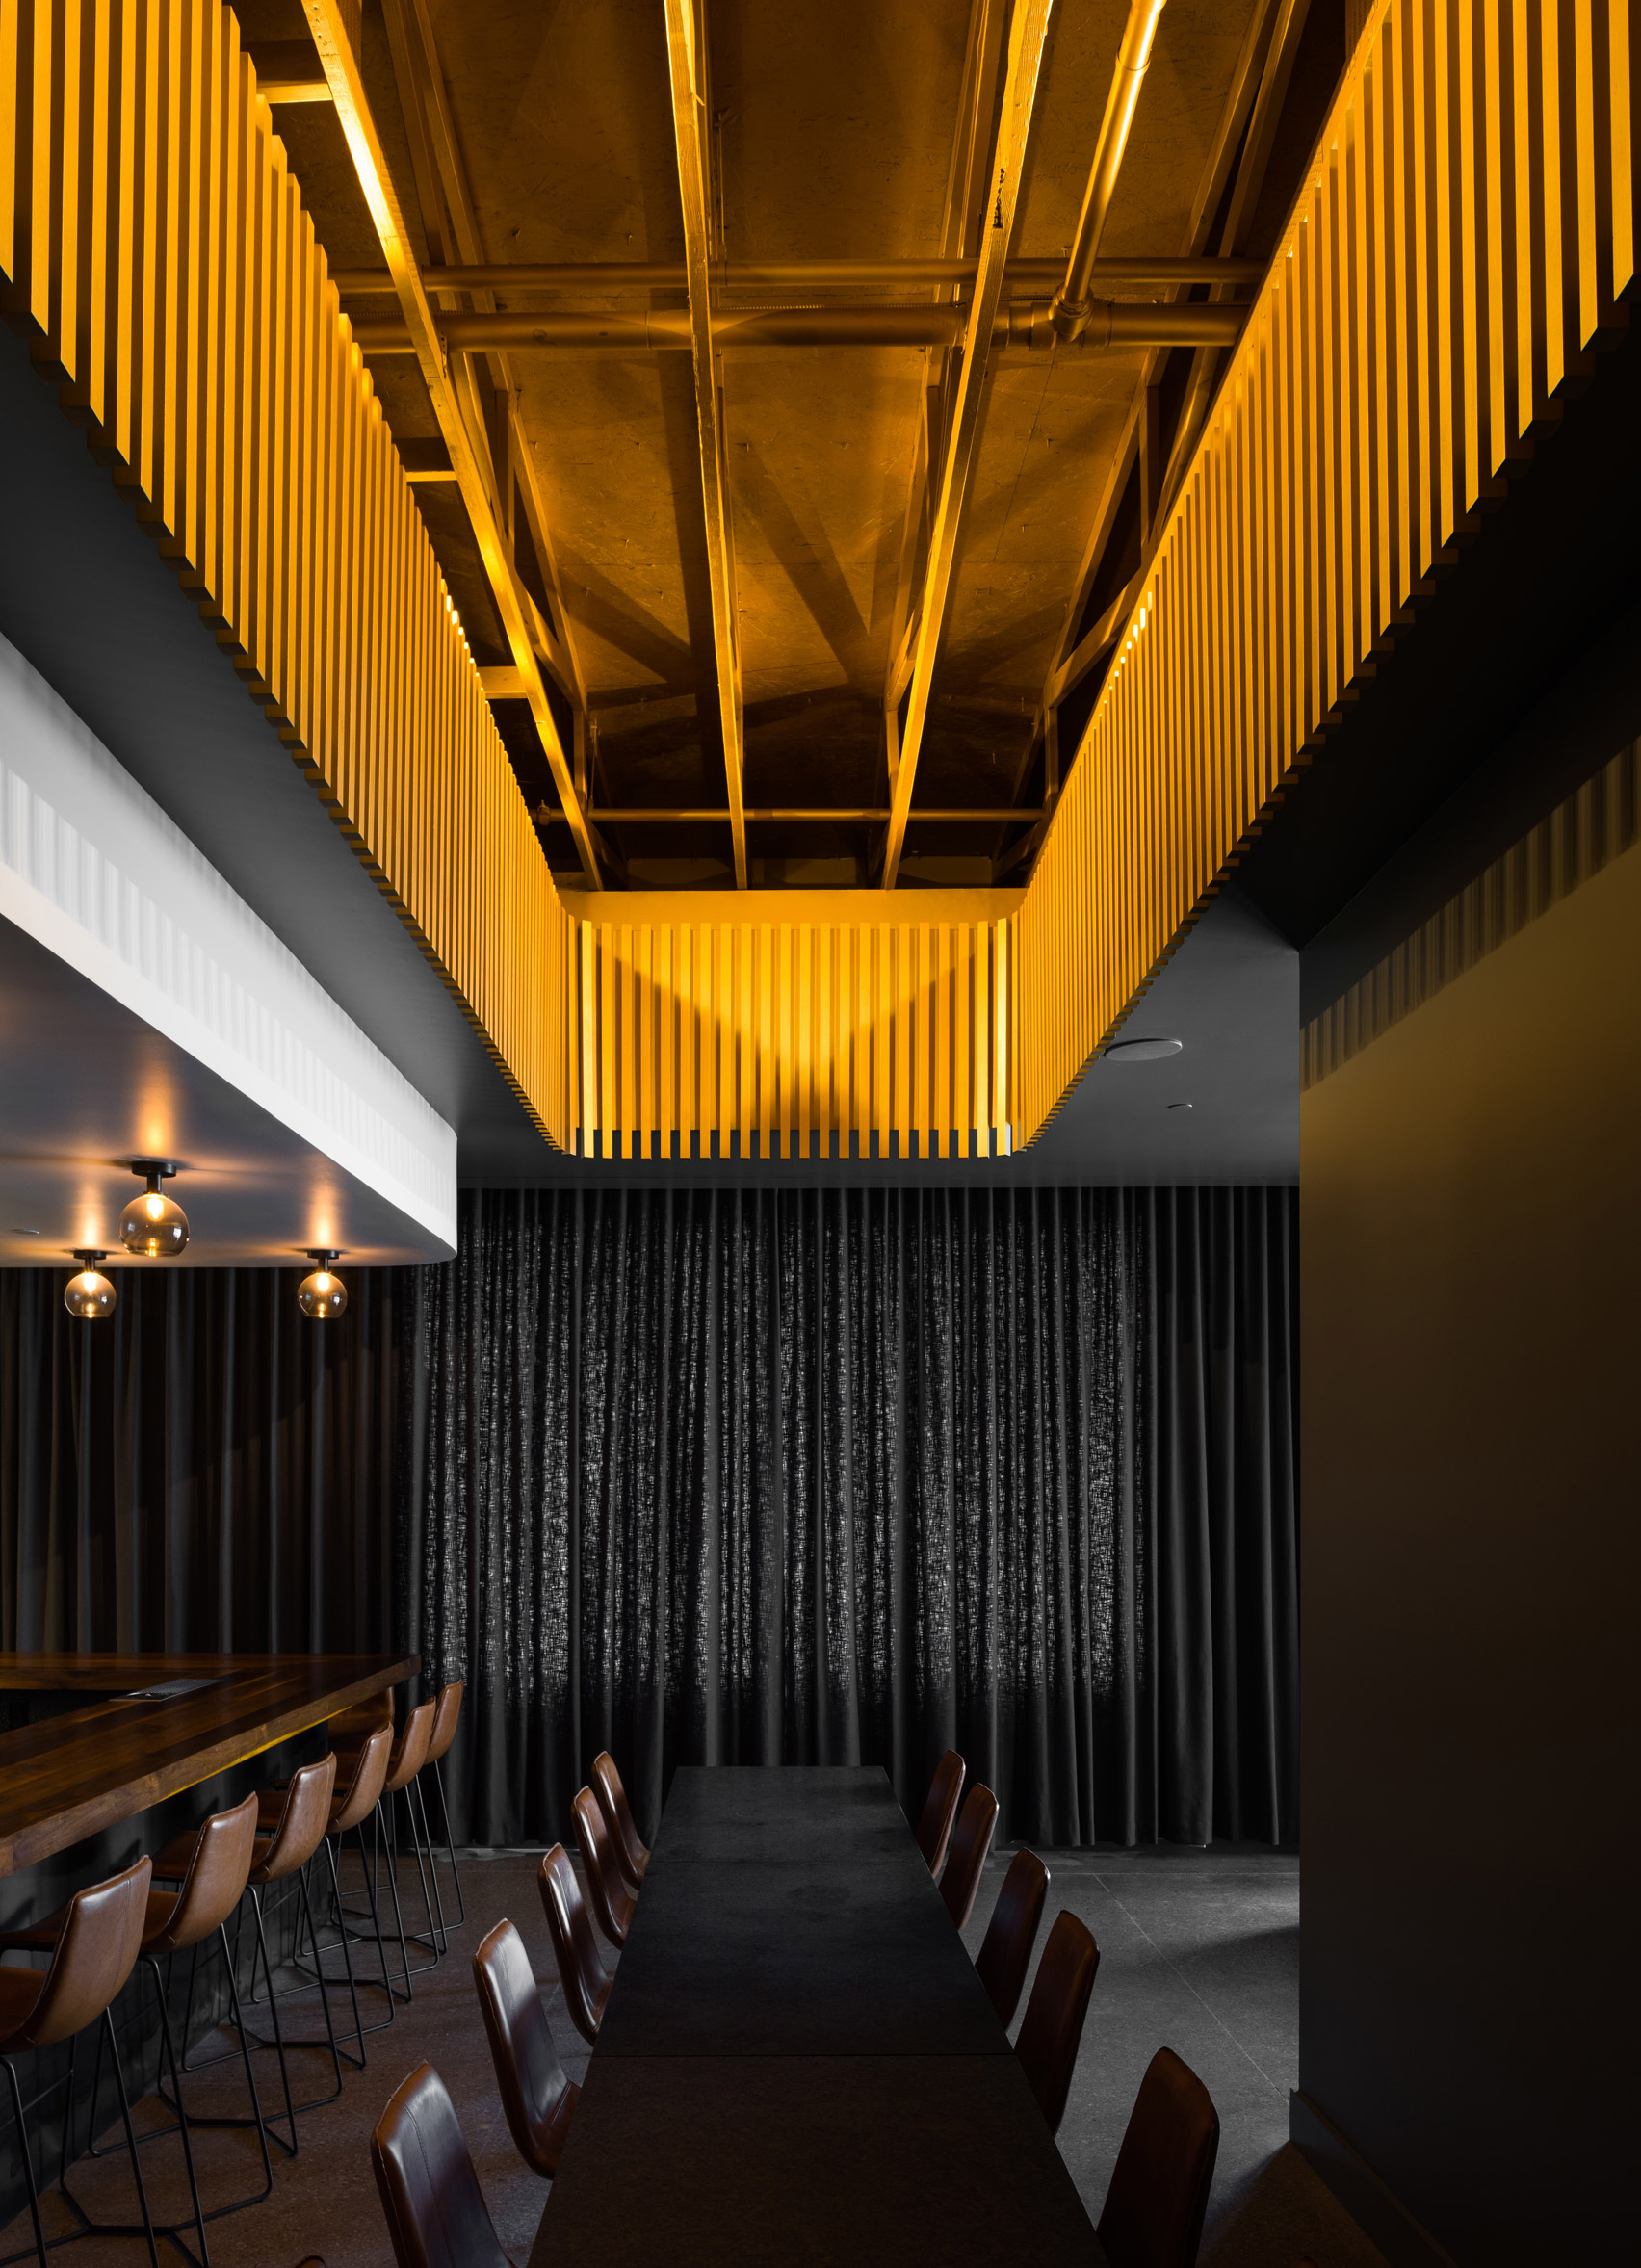 houndstooth-coffee-and-jettison-cocktail-bar-official-sylvan-thirty-texas-usa_dezeen_1704_col_10